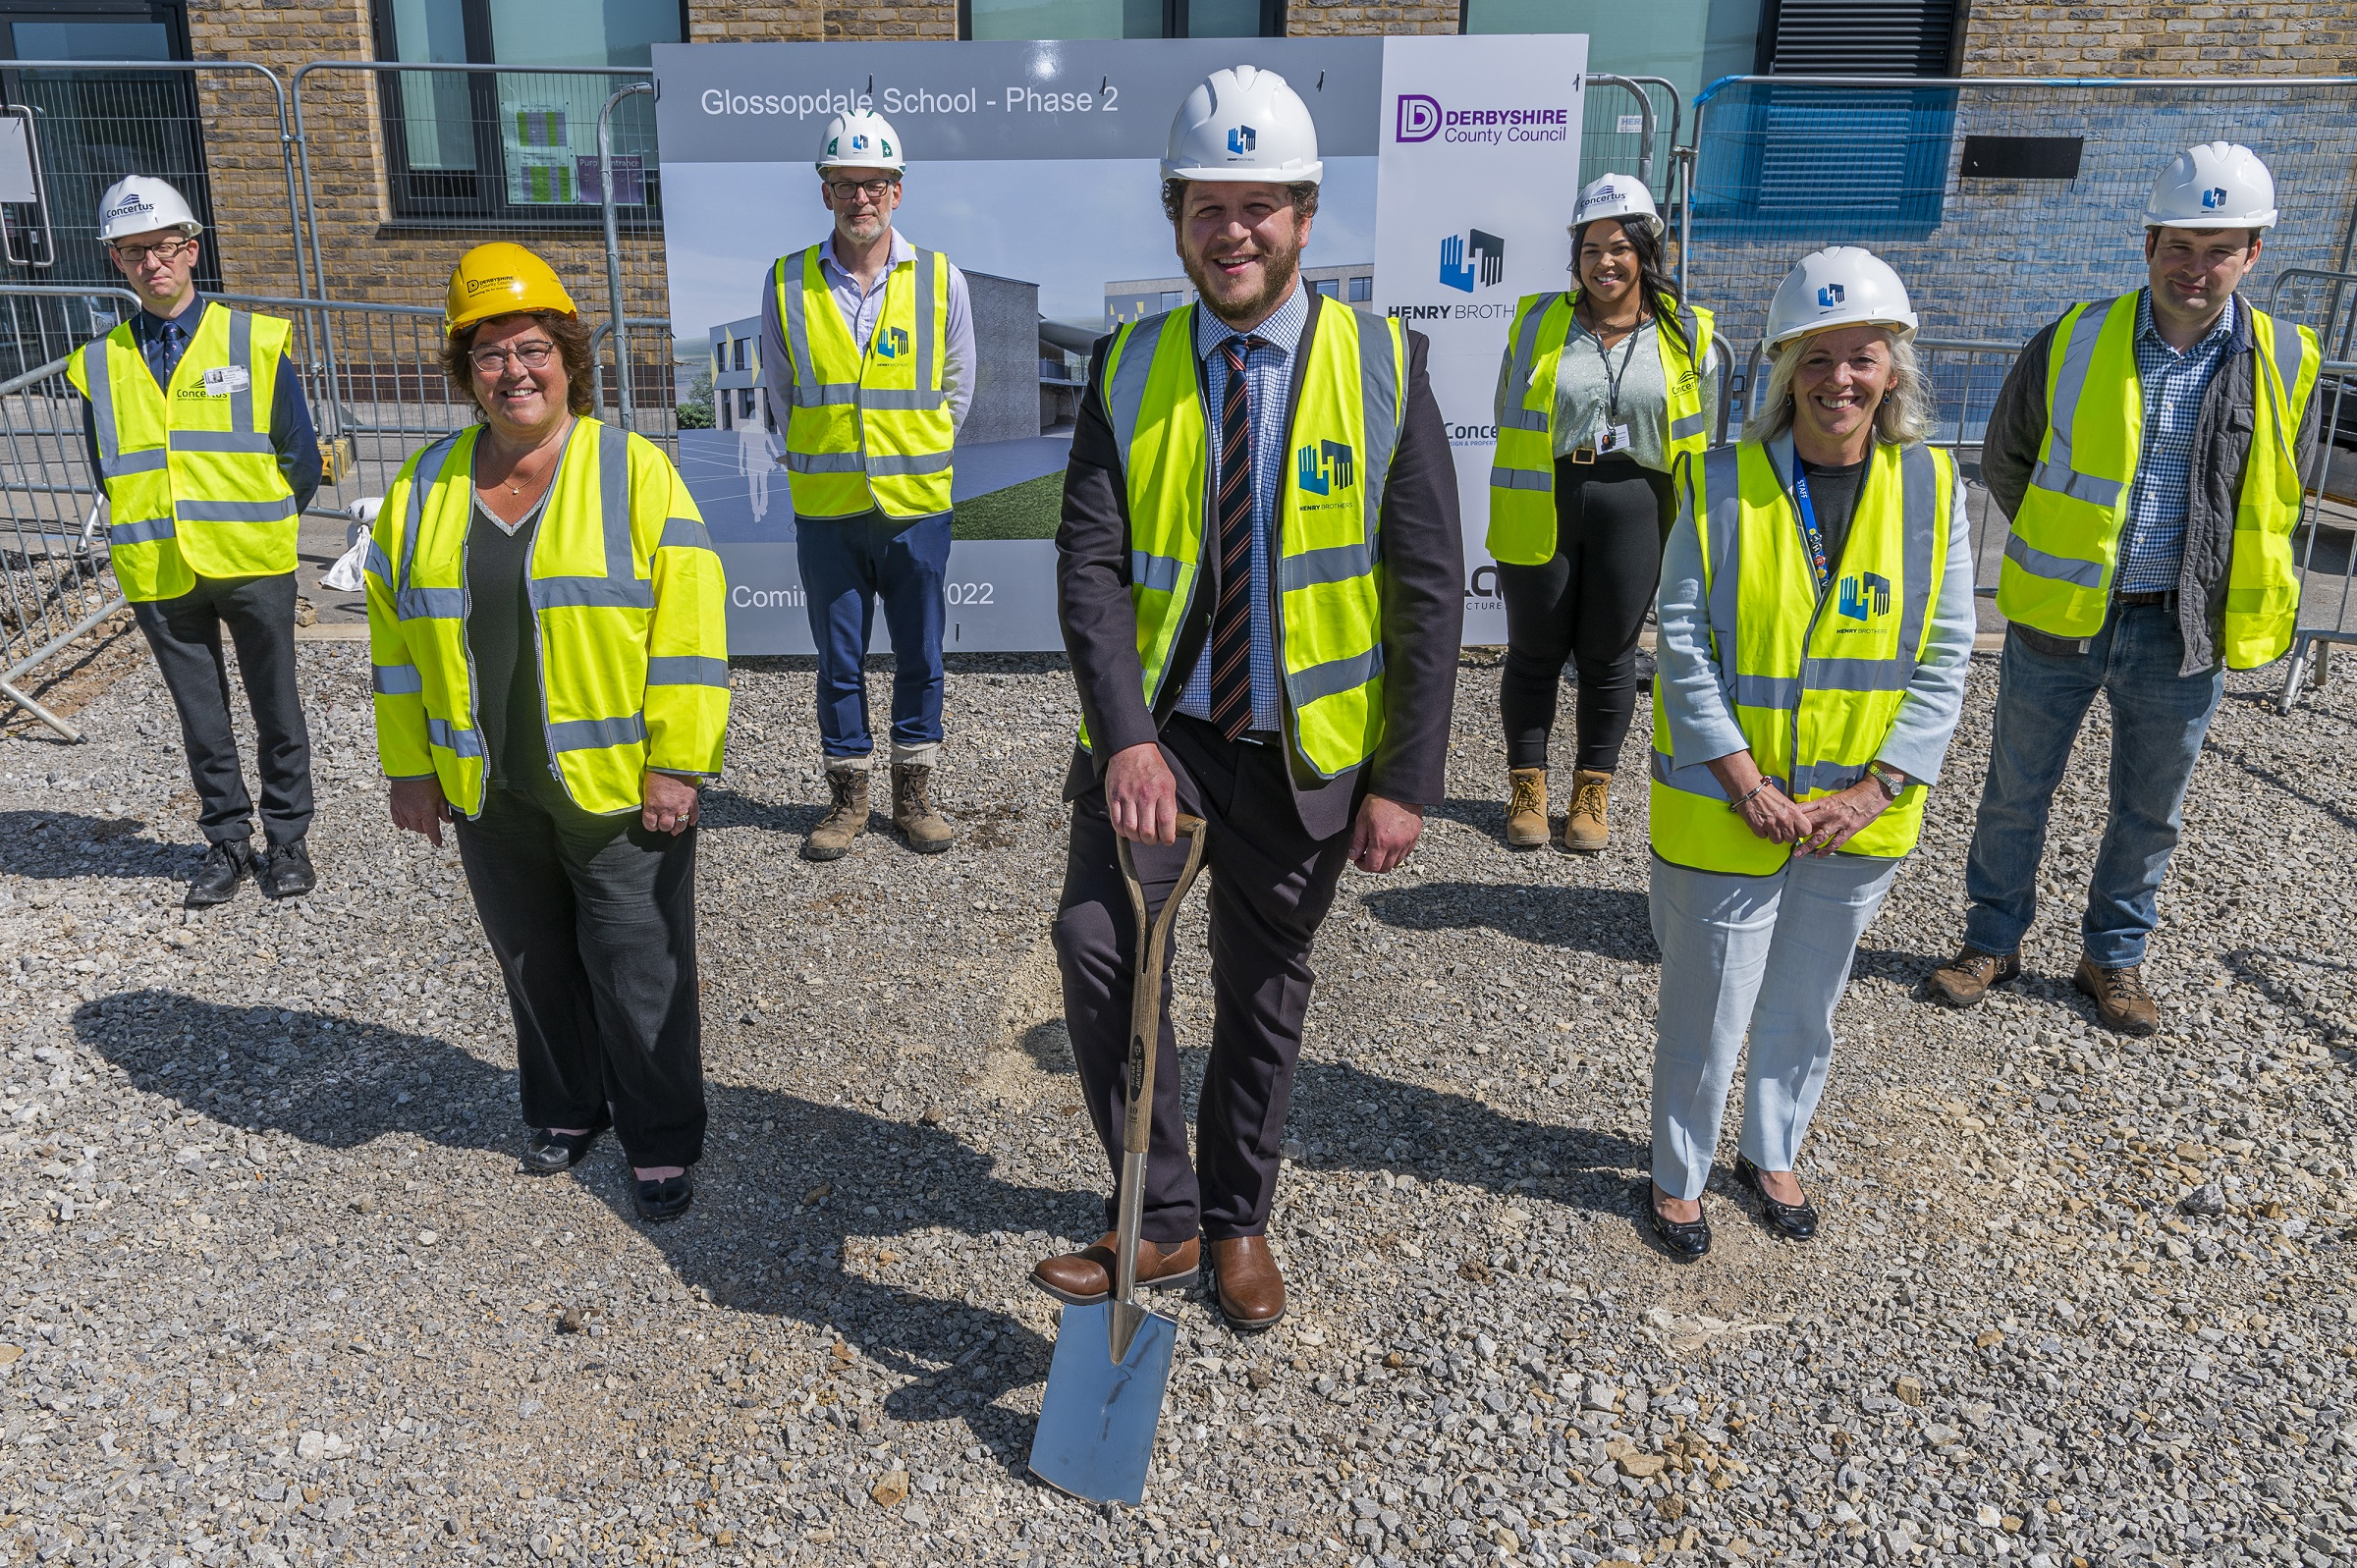 Henry Brothers starts work on Glossopdale School extension